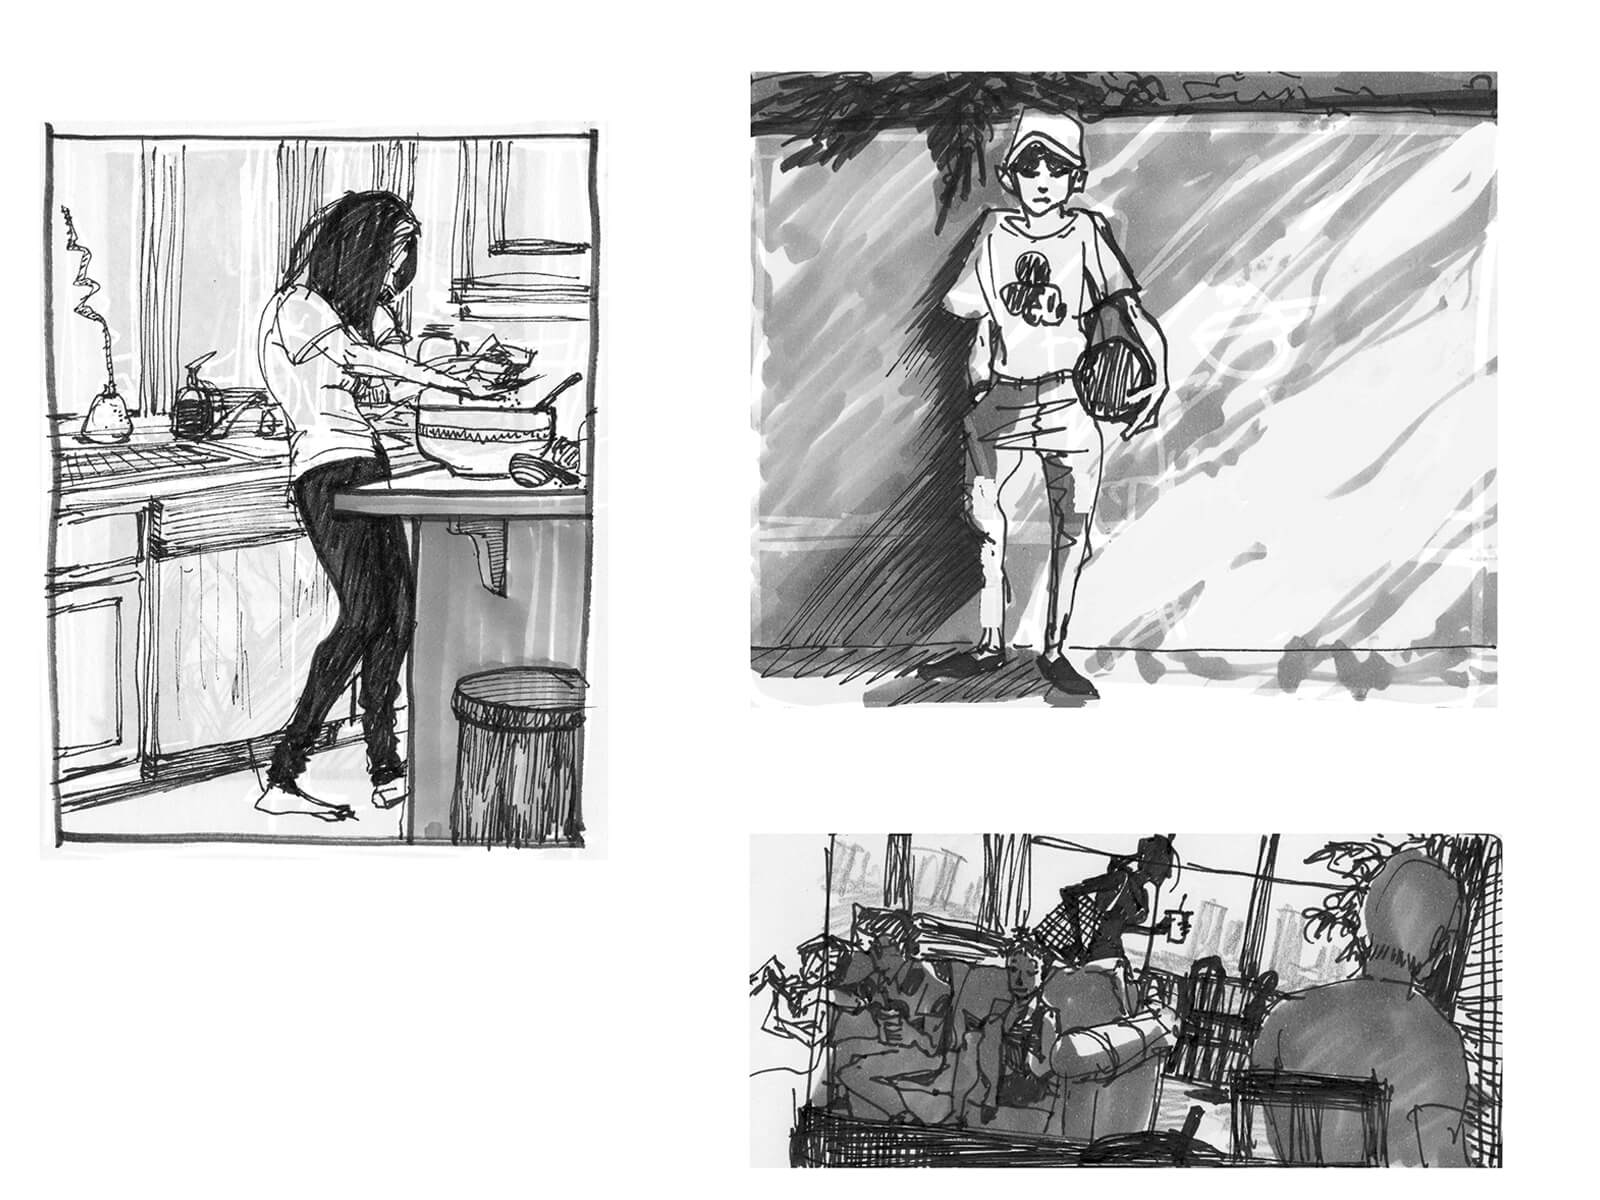 black and white drawings of a woman cooking, a boy in a mickey mouse t-shirt holding a ball, and a cafe scene